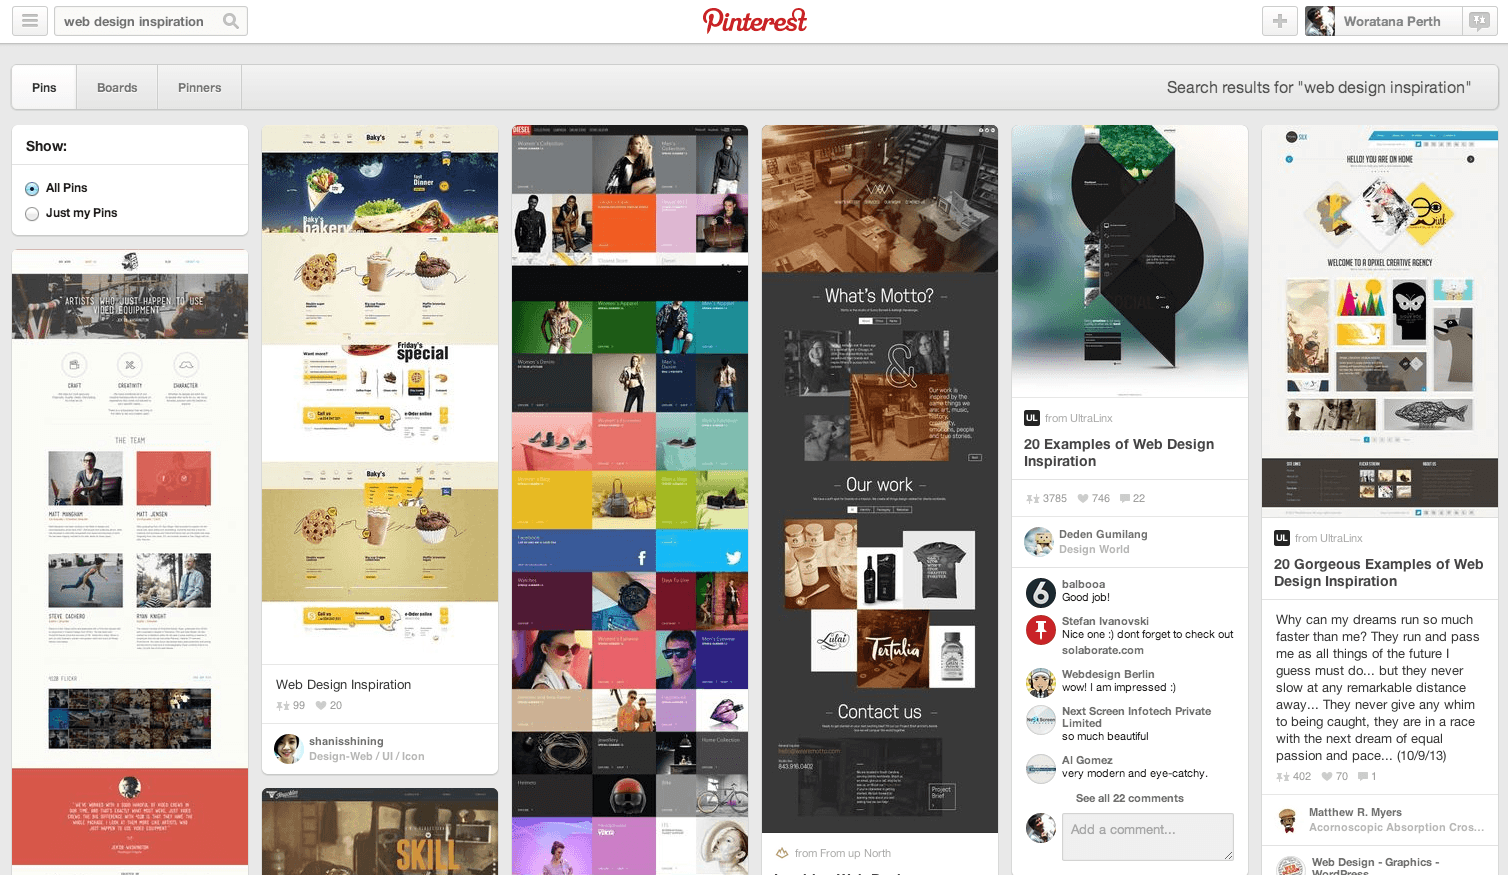 Pinterest Design Inspiration